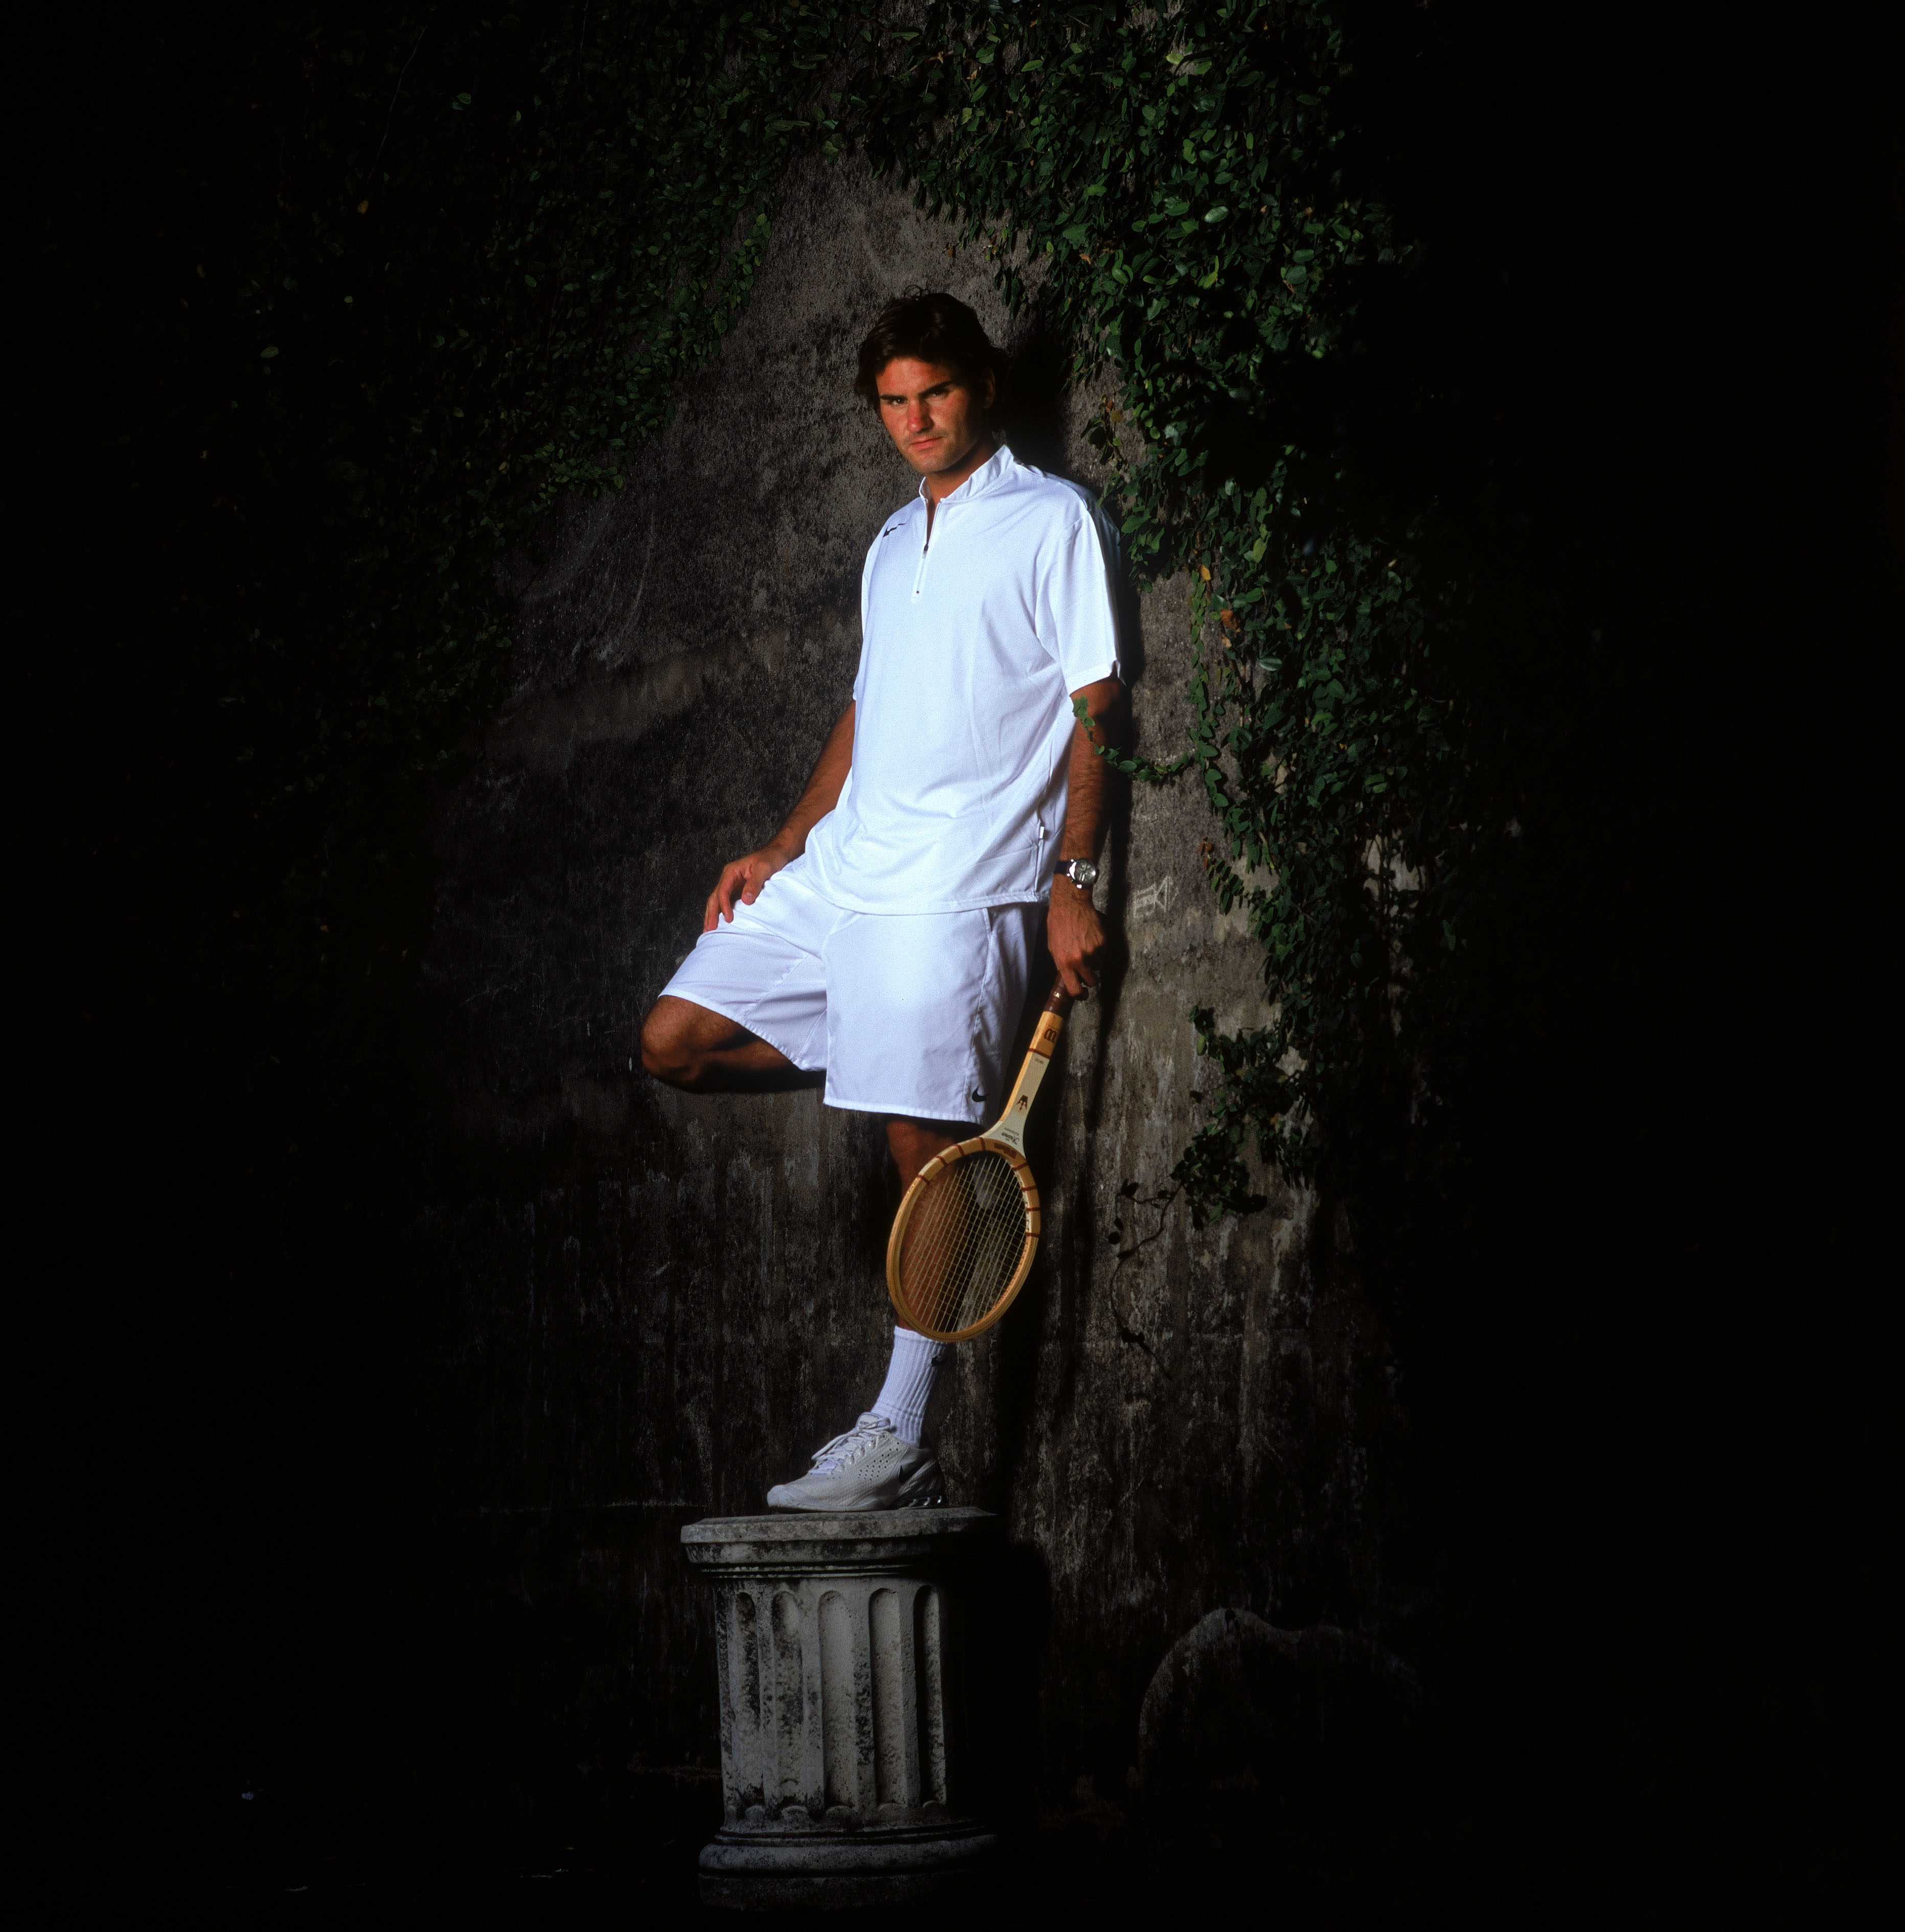 SYDNEY, AUSTRALIA - DECEMBER 21:  Roger Federer of Switzerland poses during a photo shoot at the Park Hyatt Hotel December 21, 2004 in Sydney, Australia. (Photo by Adam Pretty/Getty Images)